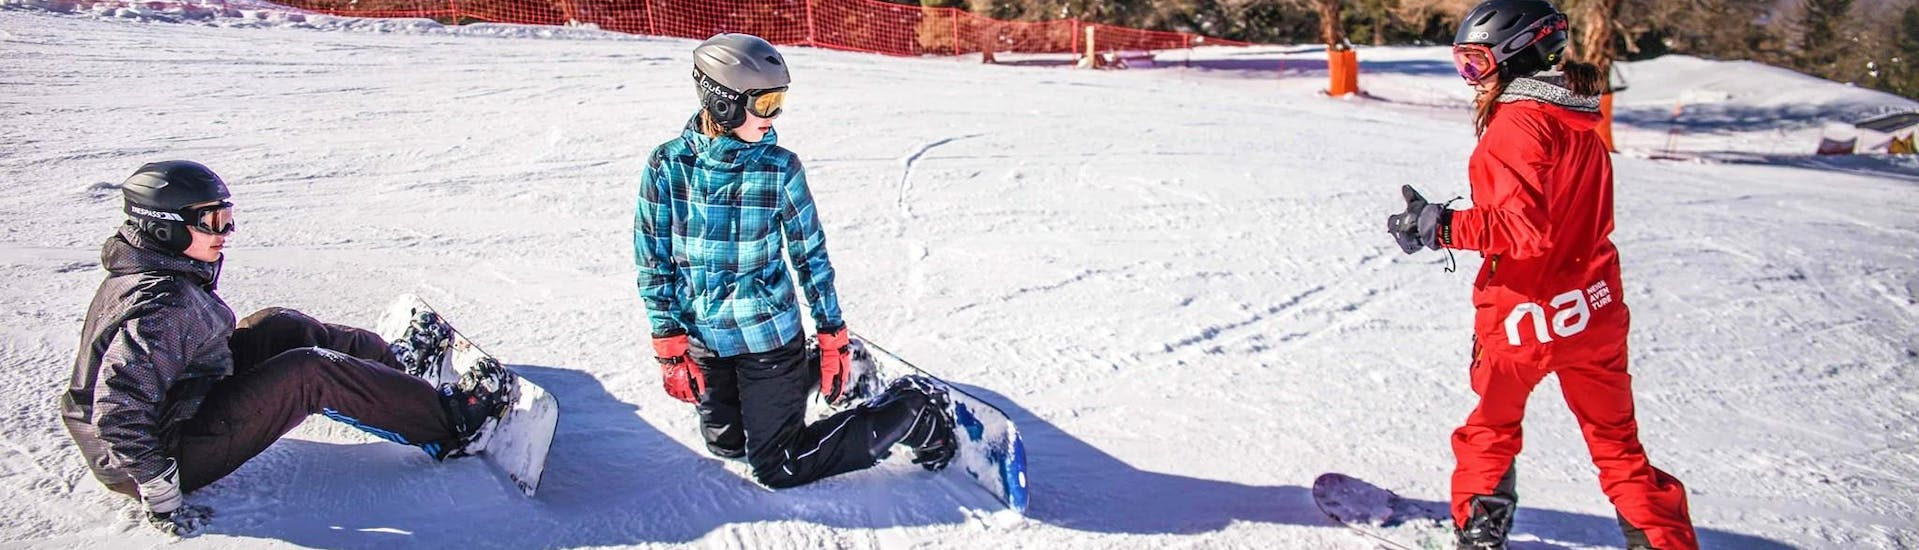 private-snowboarding-lessons-for-adults-neige-aventure-hero